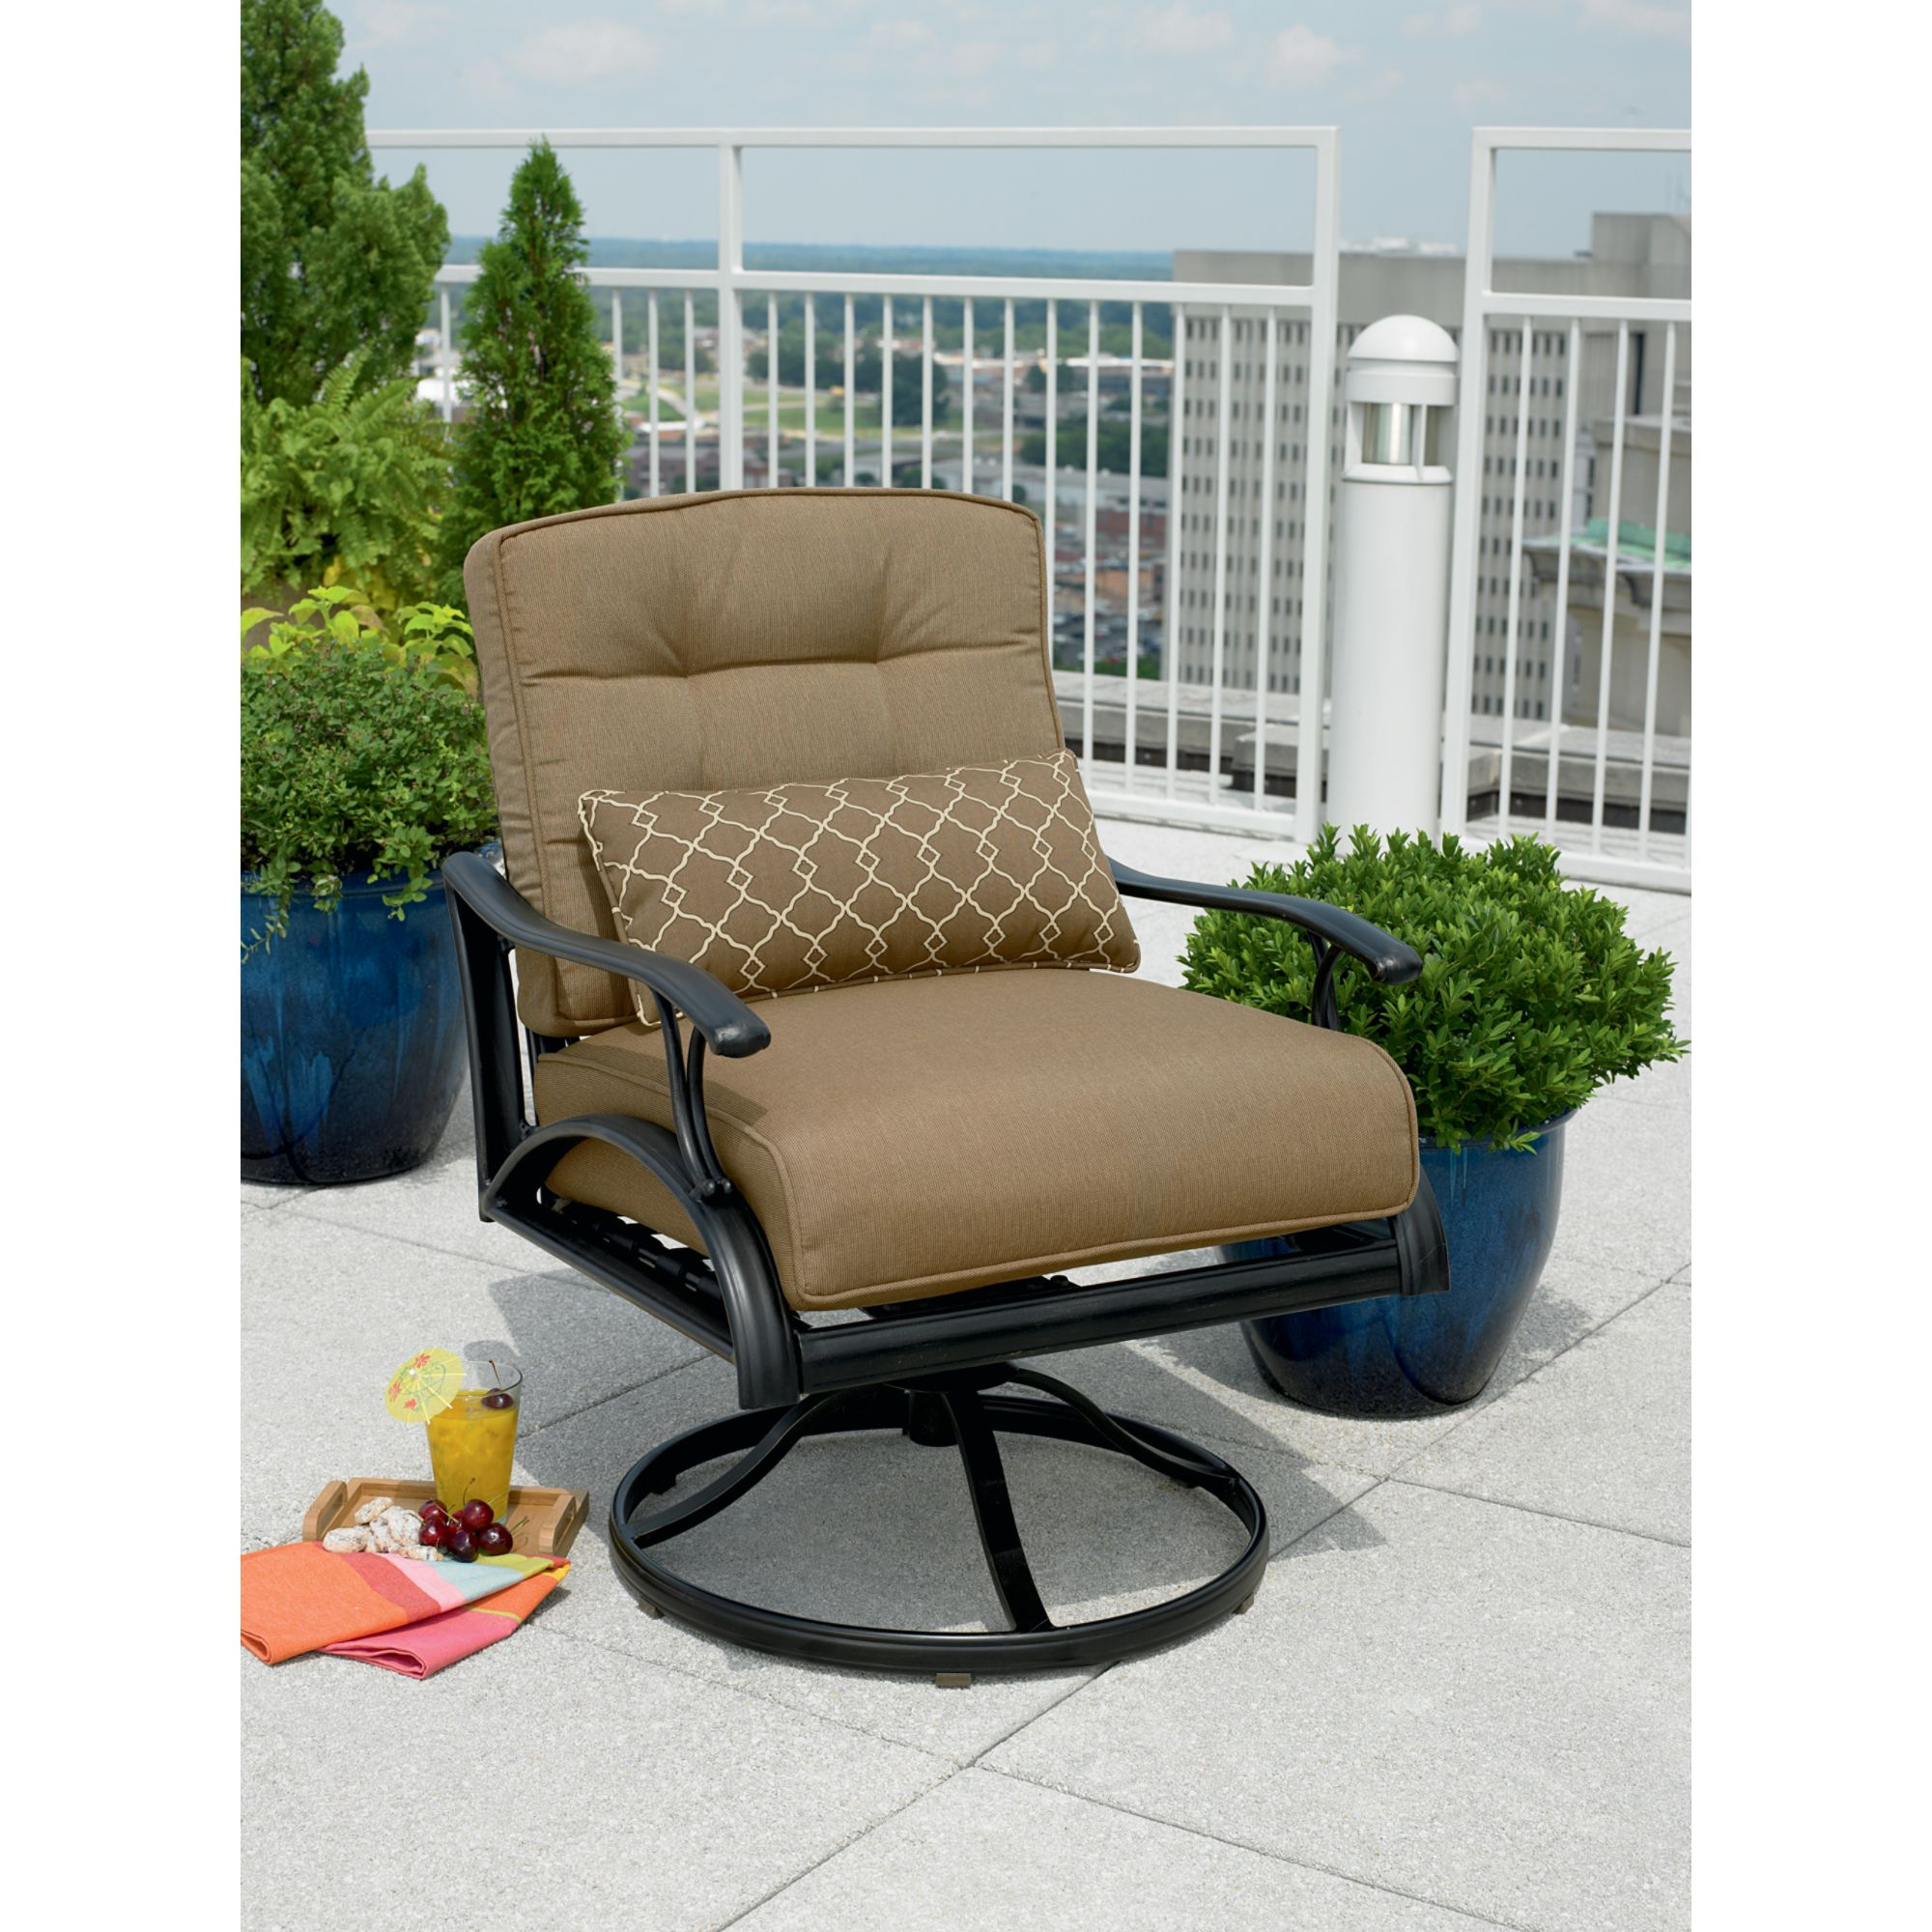 La-Z-Boy Outdoor Caitlyn 4 Pc. Seating Set